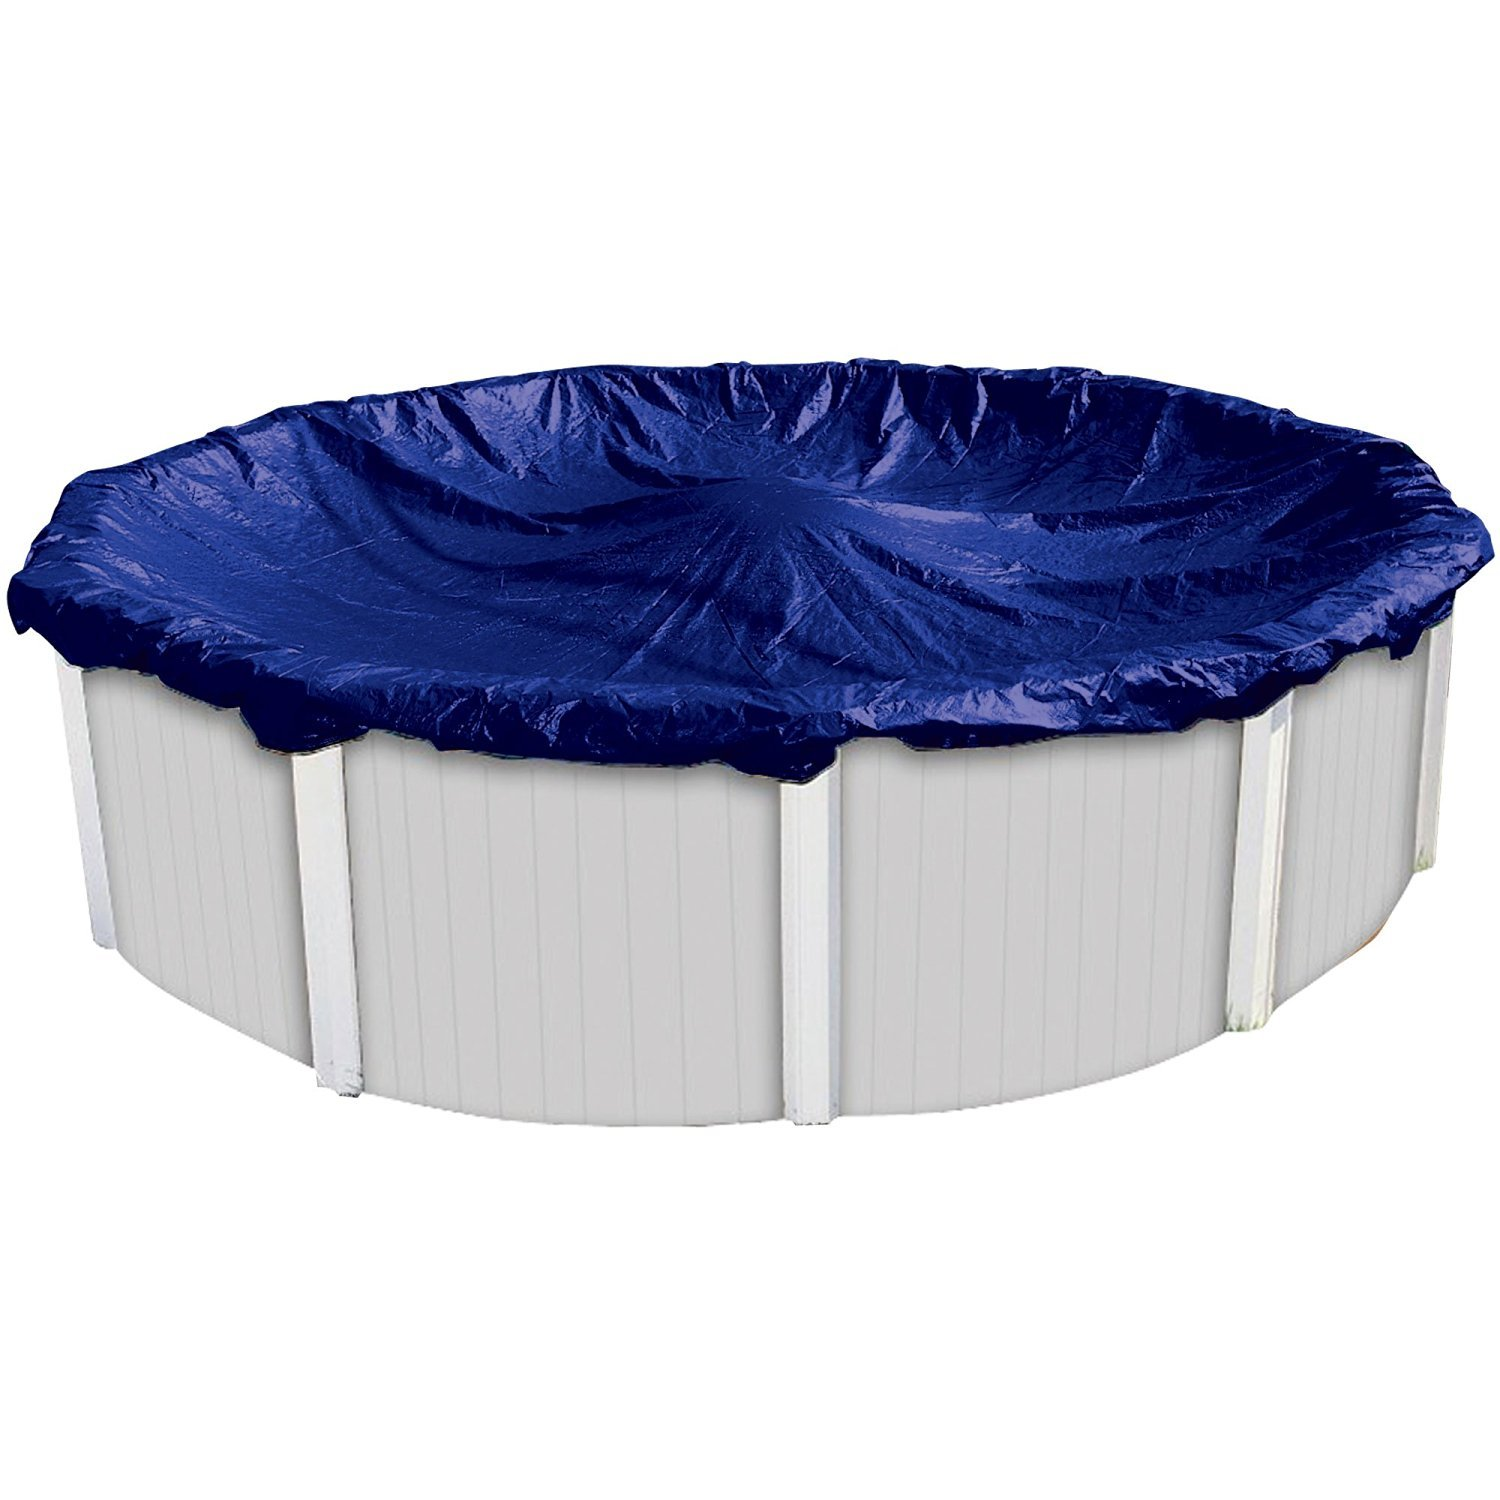 Harris 10-Year Economy Winter Cover for 24' Above Ground Round Pool by Harris